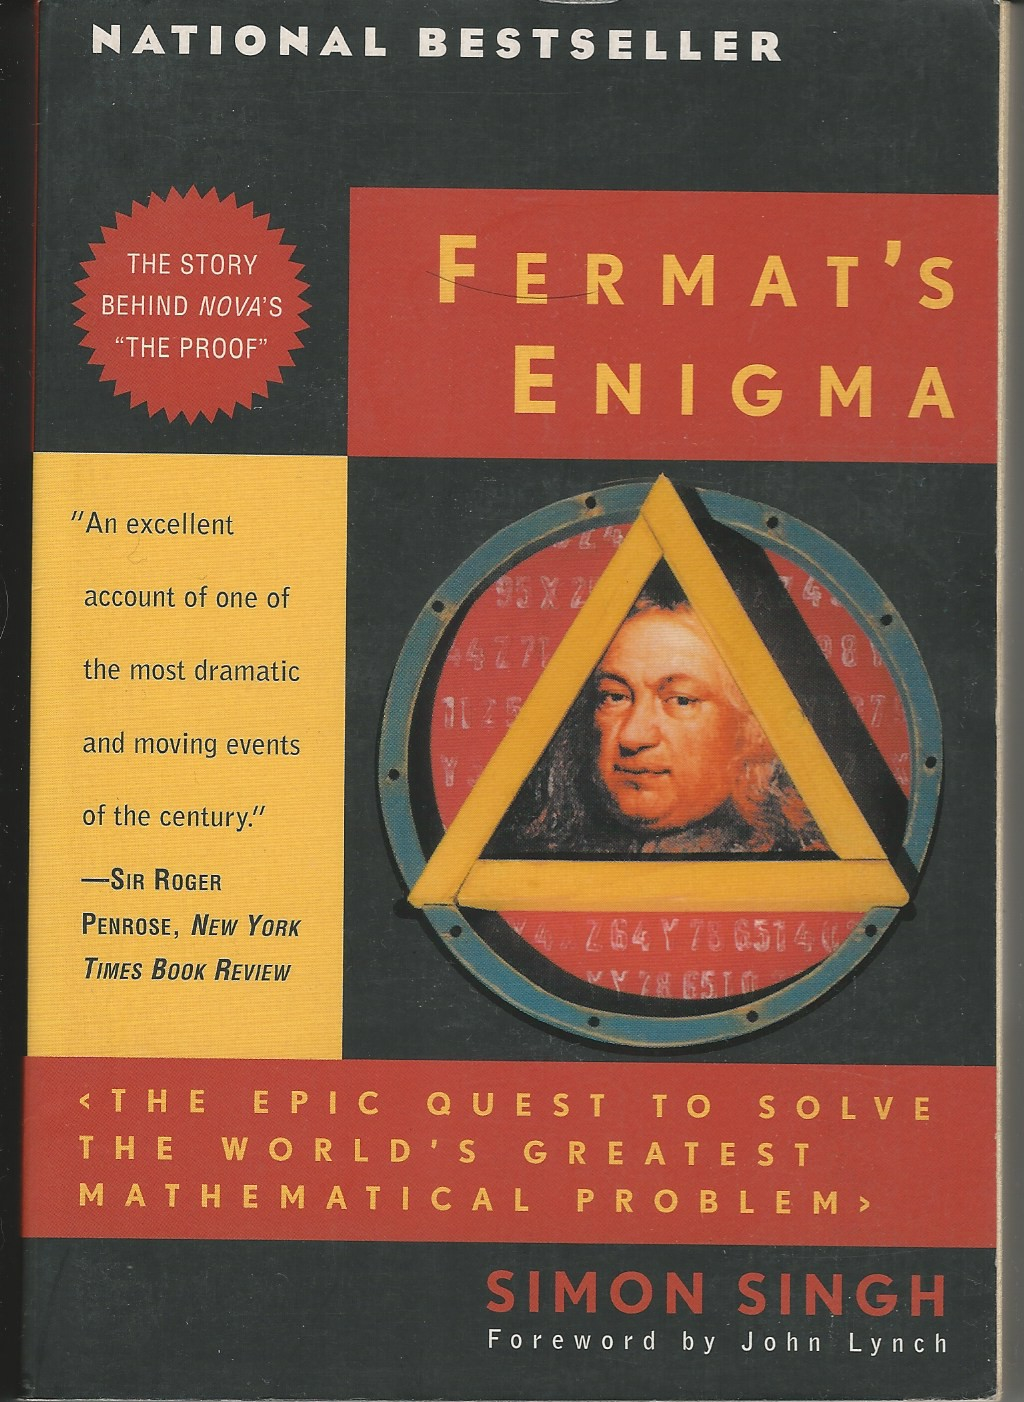 the complex equations in fermats enigma a book by simon singh Research and publish the best content get started for free sign up with facebook sign up with twitter i don't have a facebook or a twitter account.